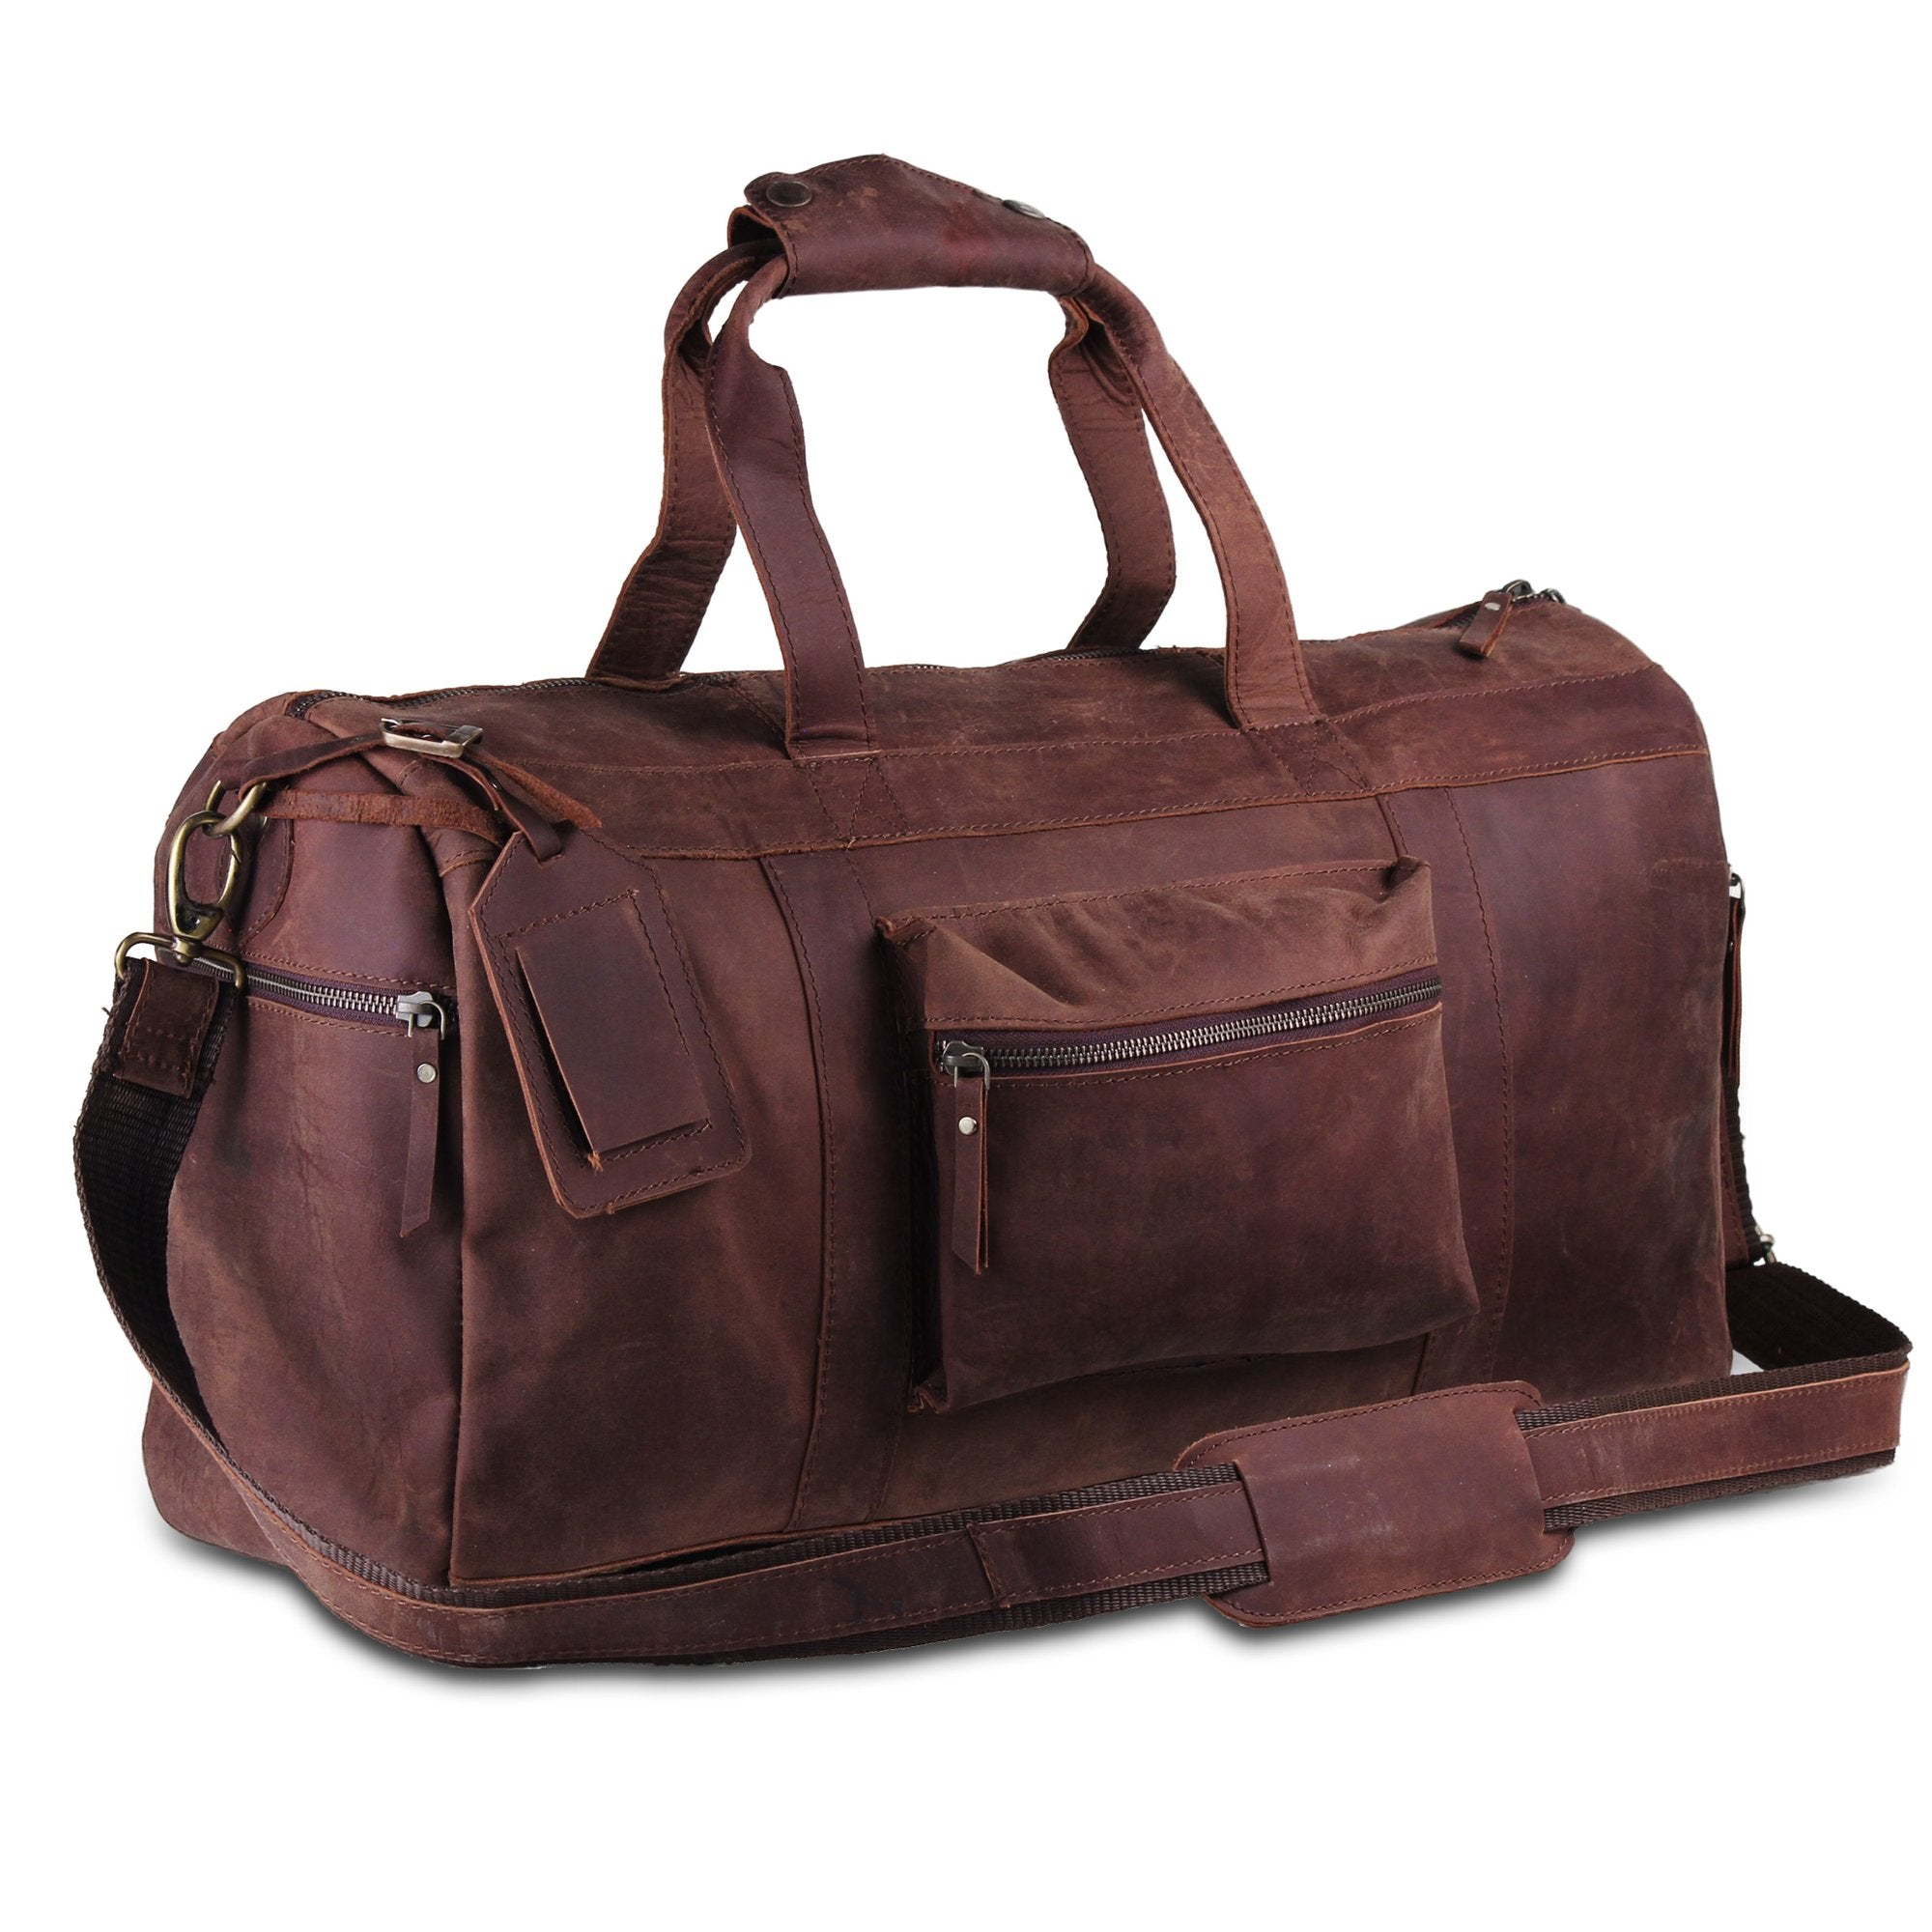 Genuine Full Grain Brown Leather Duffle Bag with Leather Name Tags